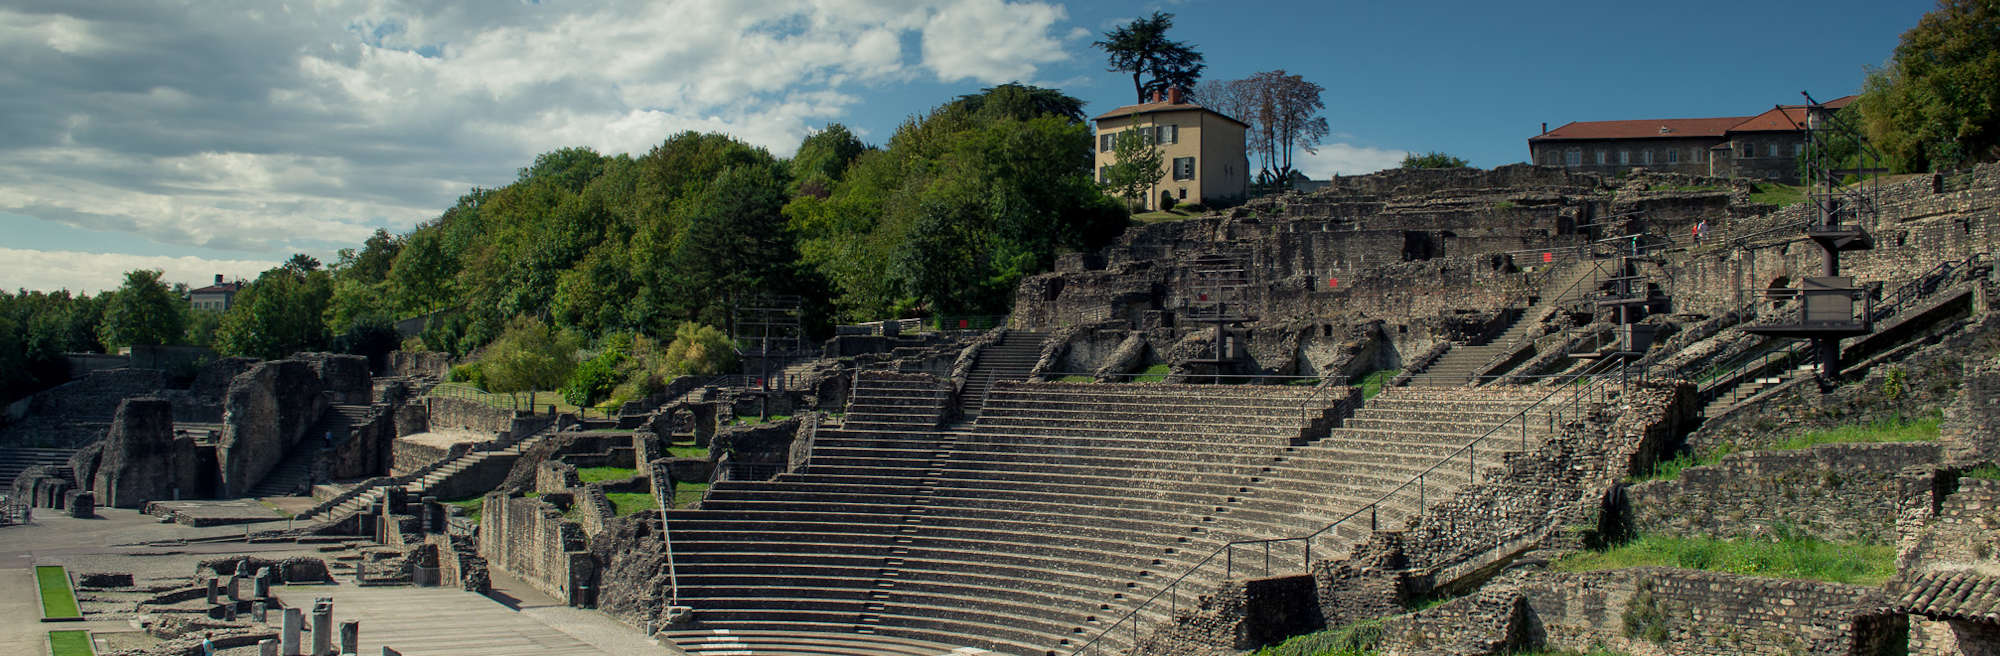 touristic visit of the Lyon Gallo-Roman theater